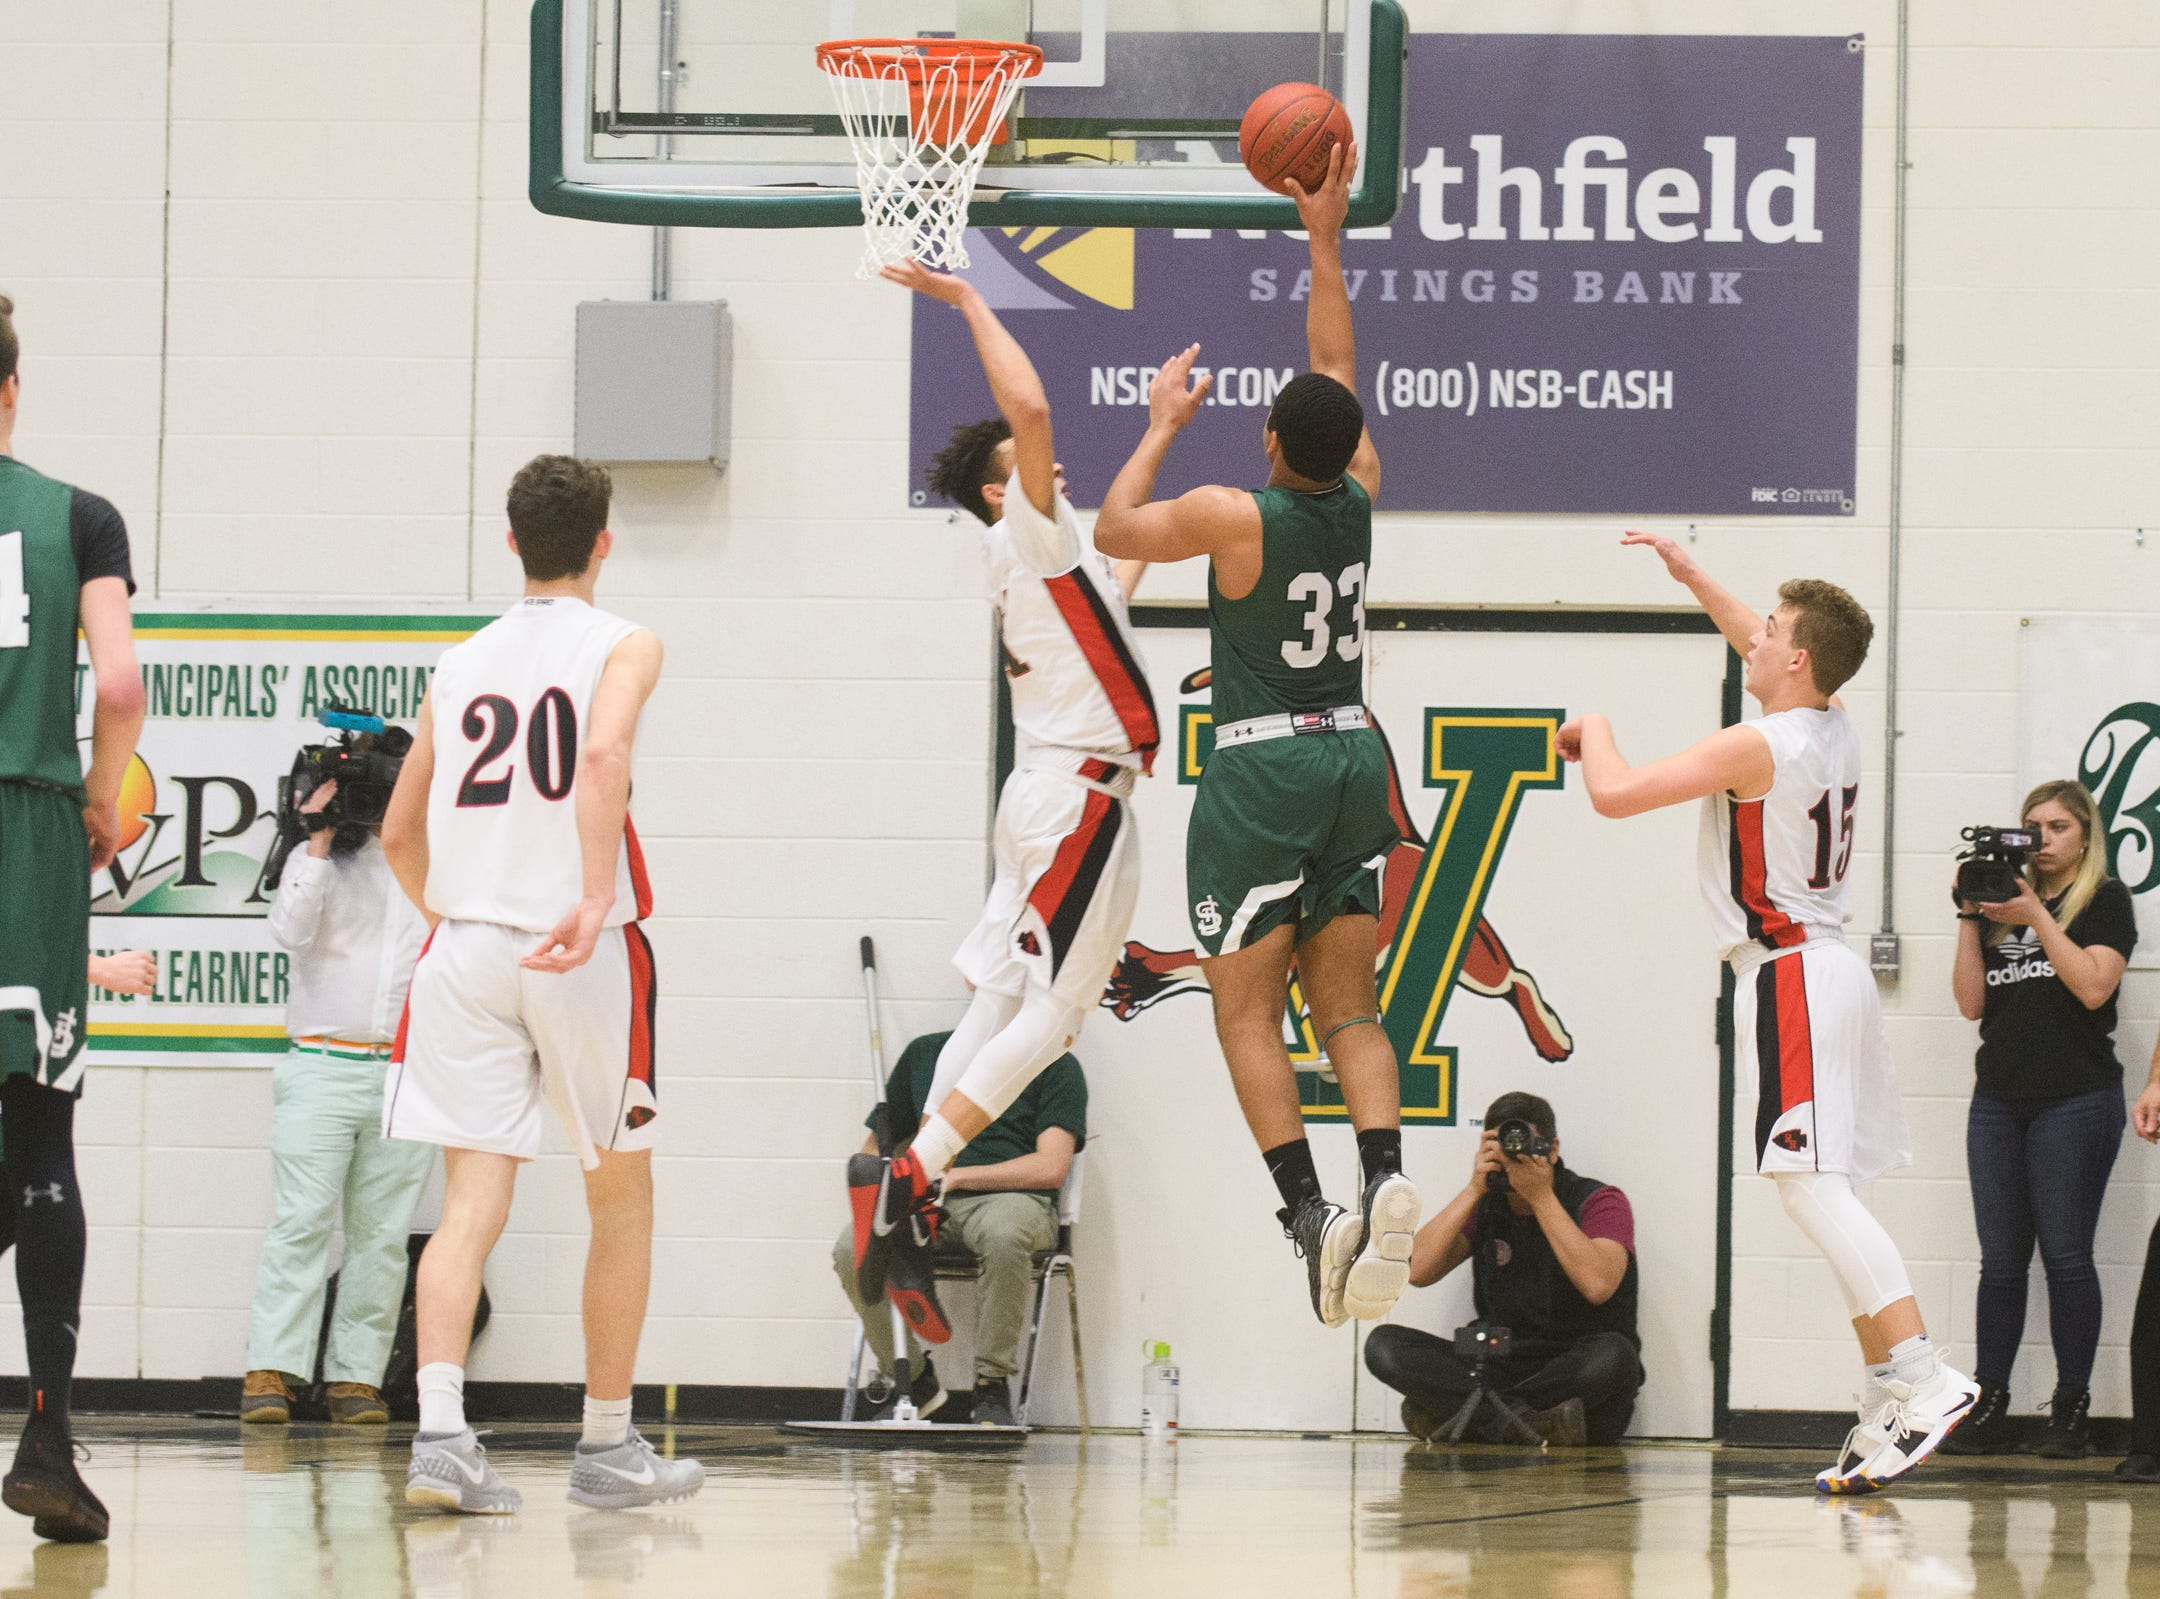 St. Johnsbury's Asom Hayman-Jones (34) leaps for a lay up over Rutland's Jamison Evans (21) during the DI boys basketball championship game between the St. Johnsbury Hilltoppers and the Rutland Raiders at Patrick Gym on Sunday afternoon March 17, 2019 in Burlington, Vermont.